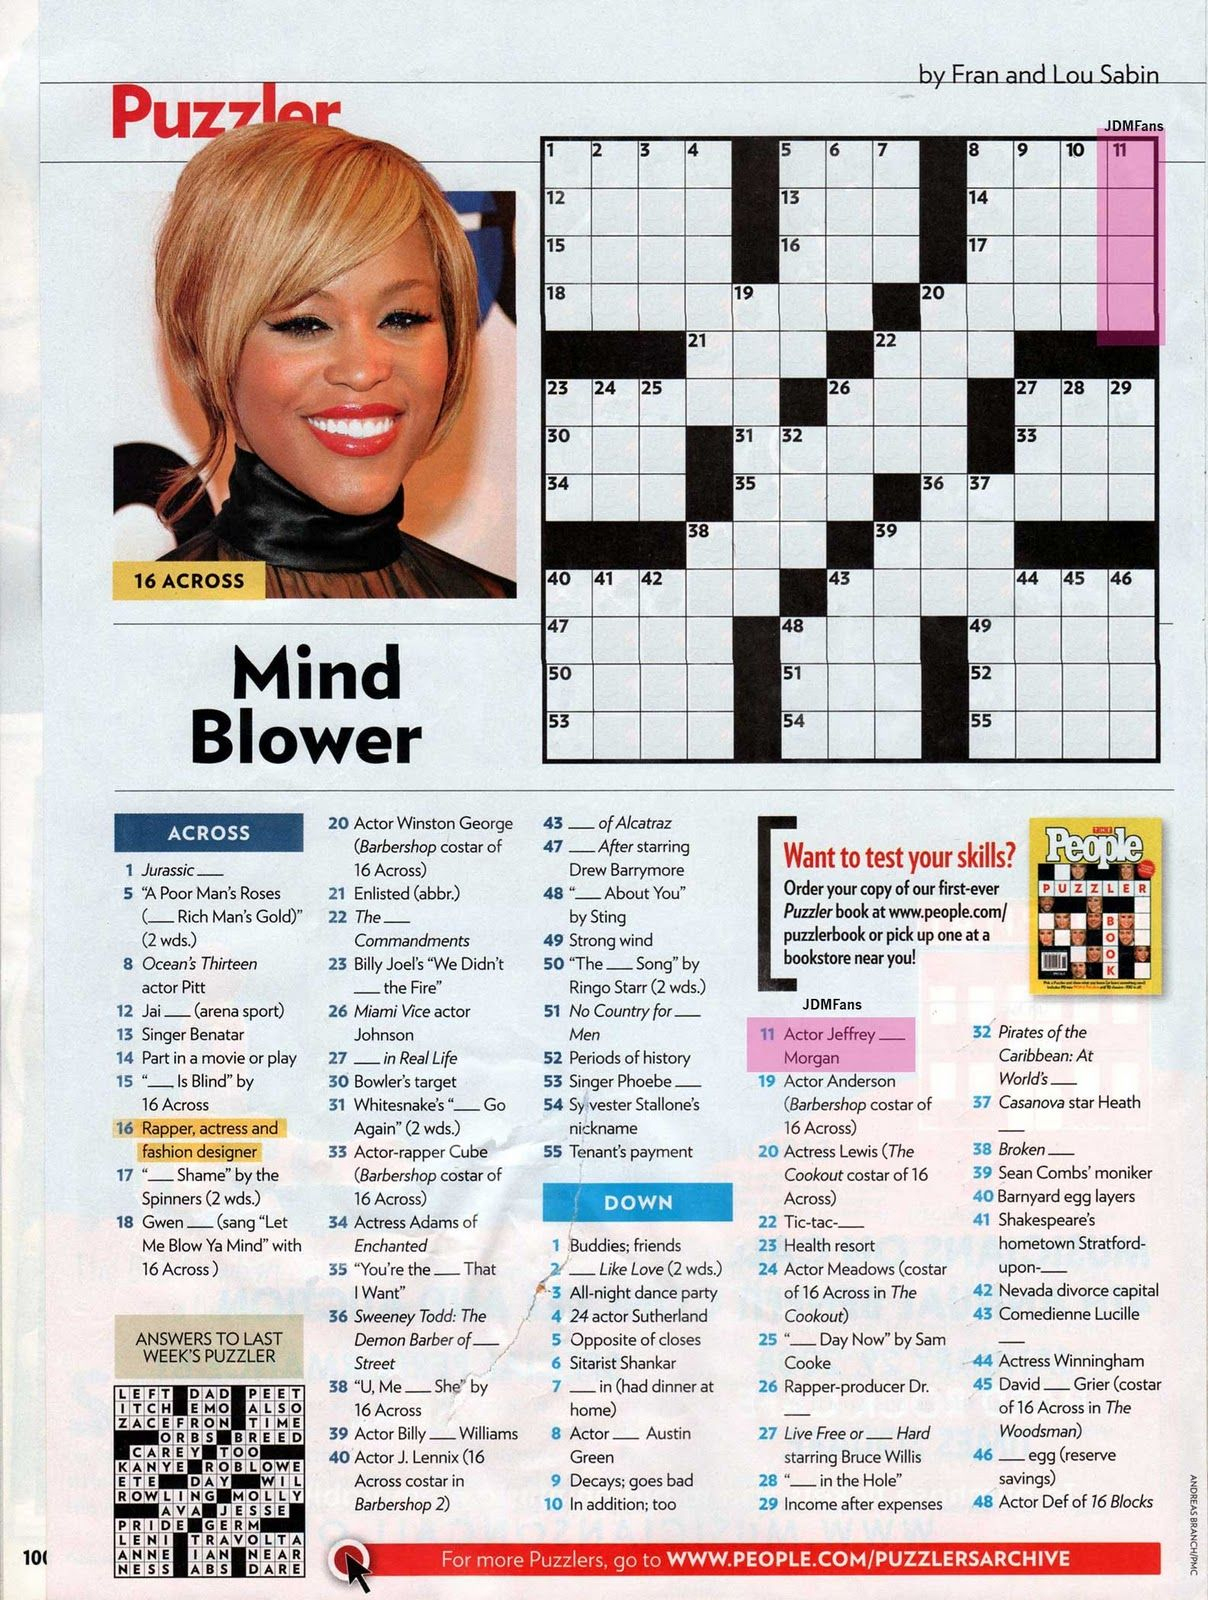 People Magazine Crossword Puzzles To Print | Puzzles In 2019 - Printable Crossword Puzzles Celebrities